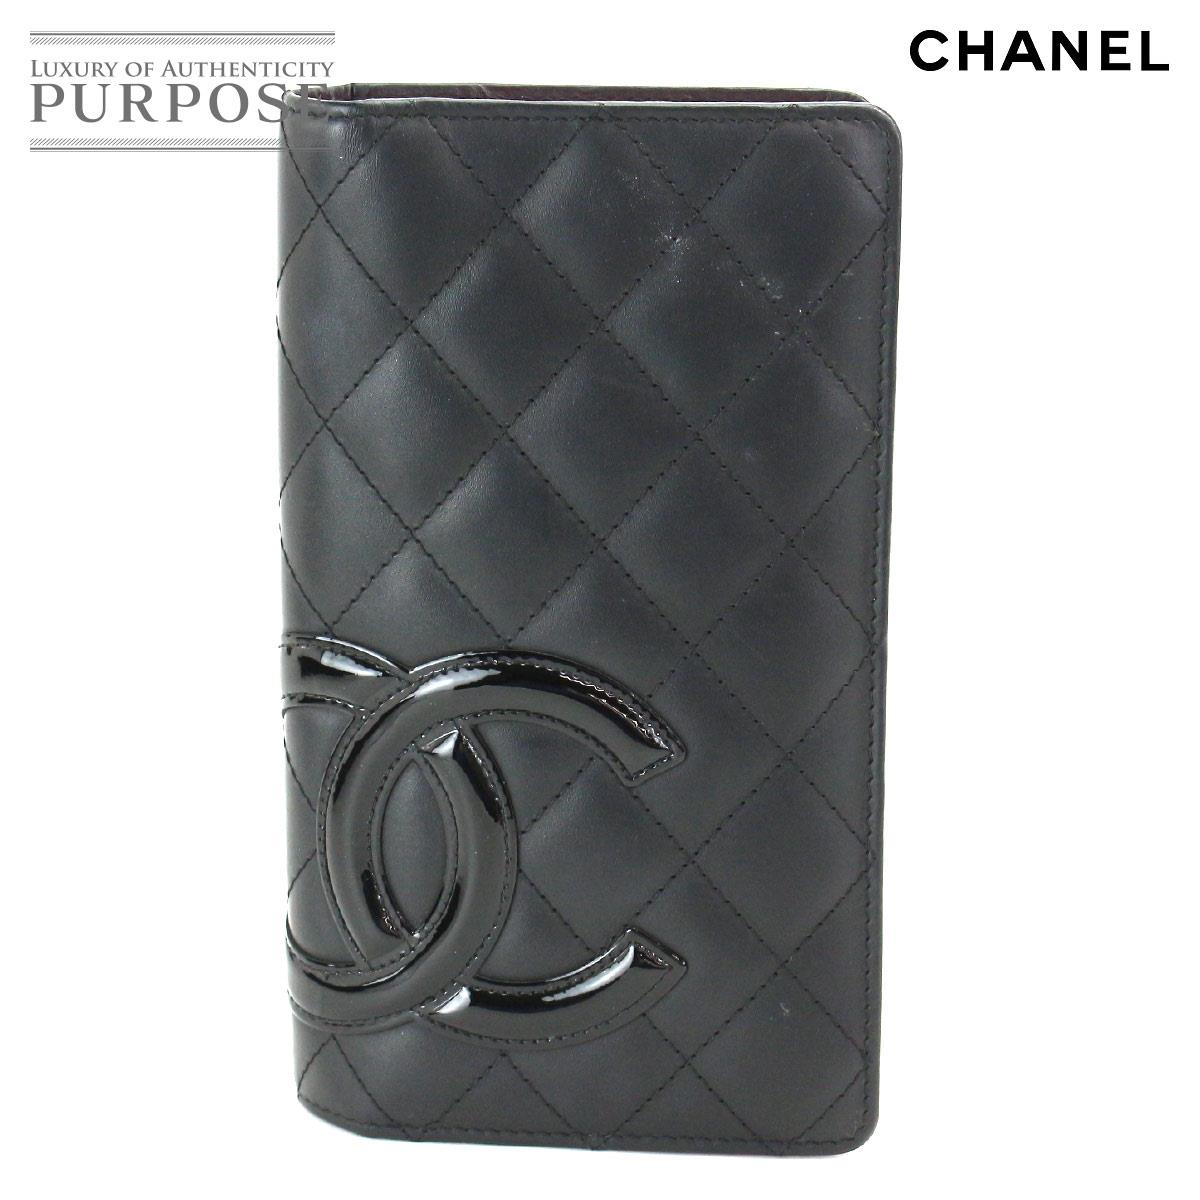 293b484c878082 Chanel CHANEL Cambon line folio long wallet leather enamel black A26717 [ used] brand